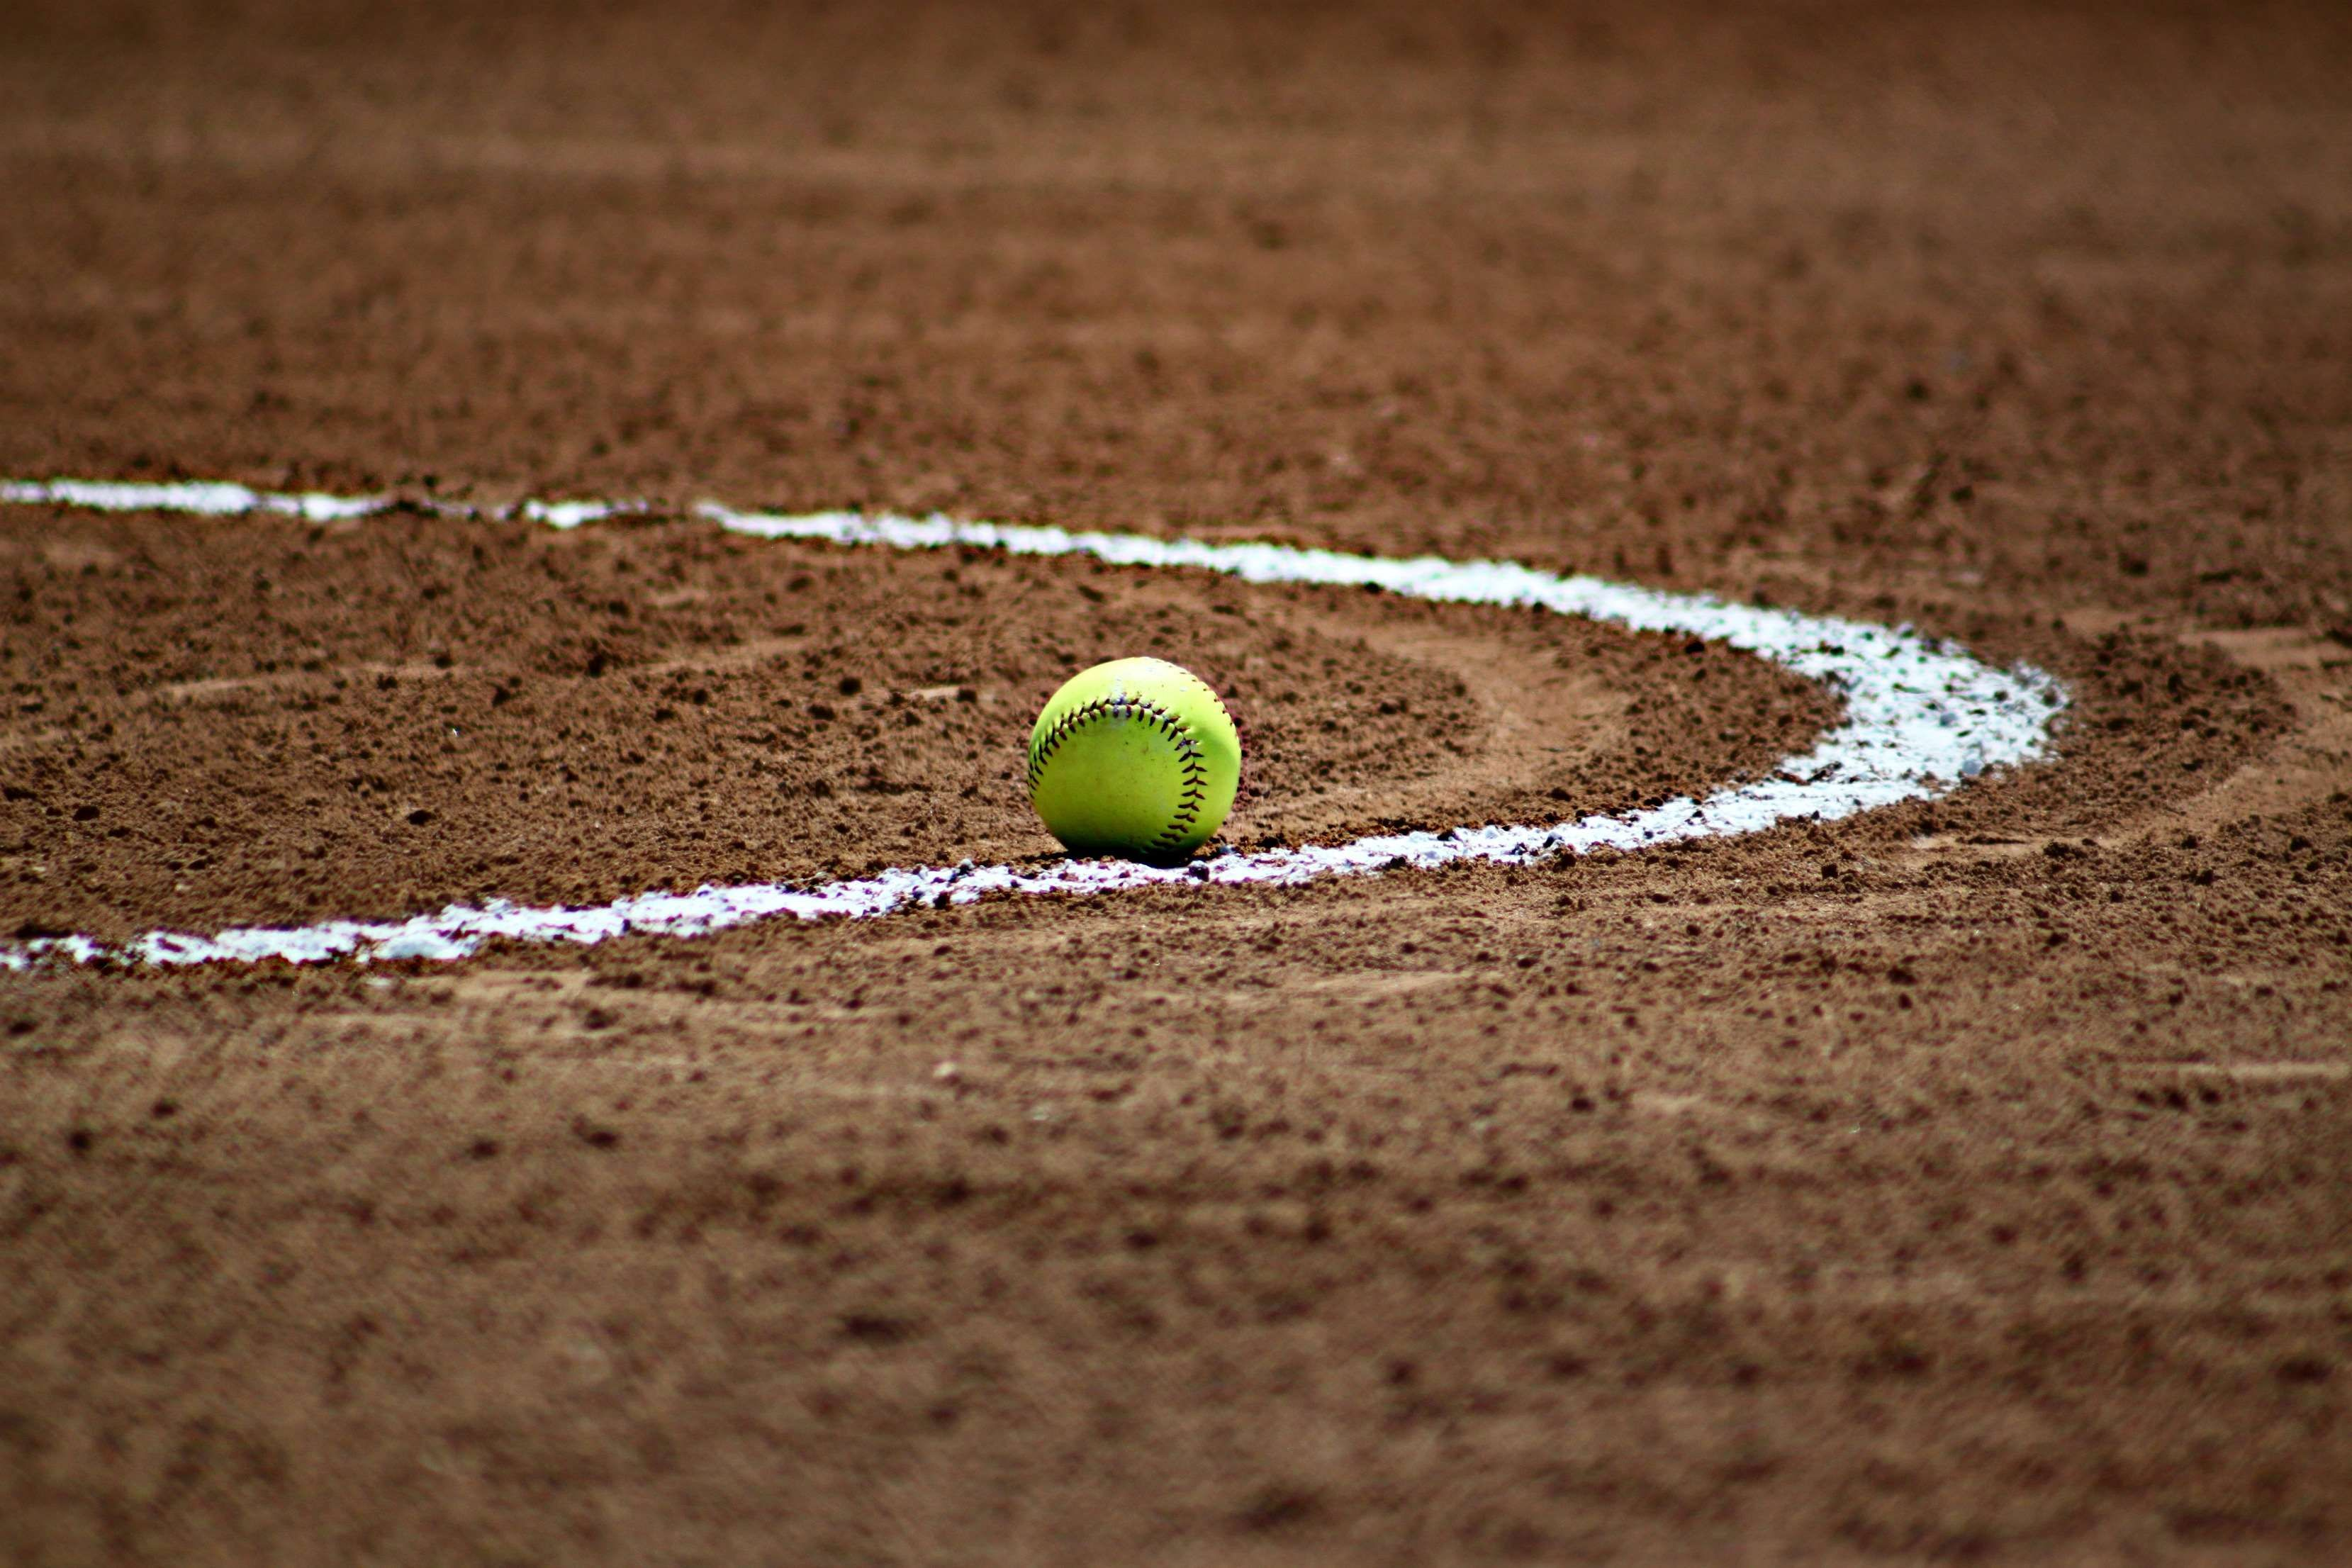 Athletics Ball Baseball Brown Chalk Dirt Field Game Horizontal Infield Line Softball Sport Sports Backgroun Softball Players Tennis Ball Softball